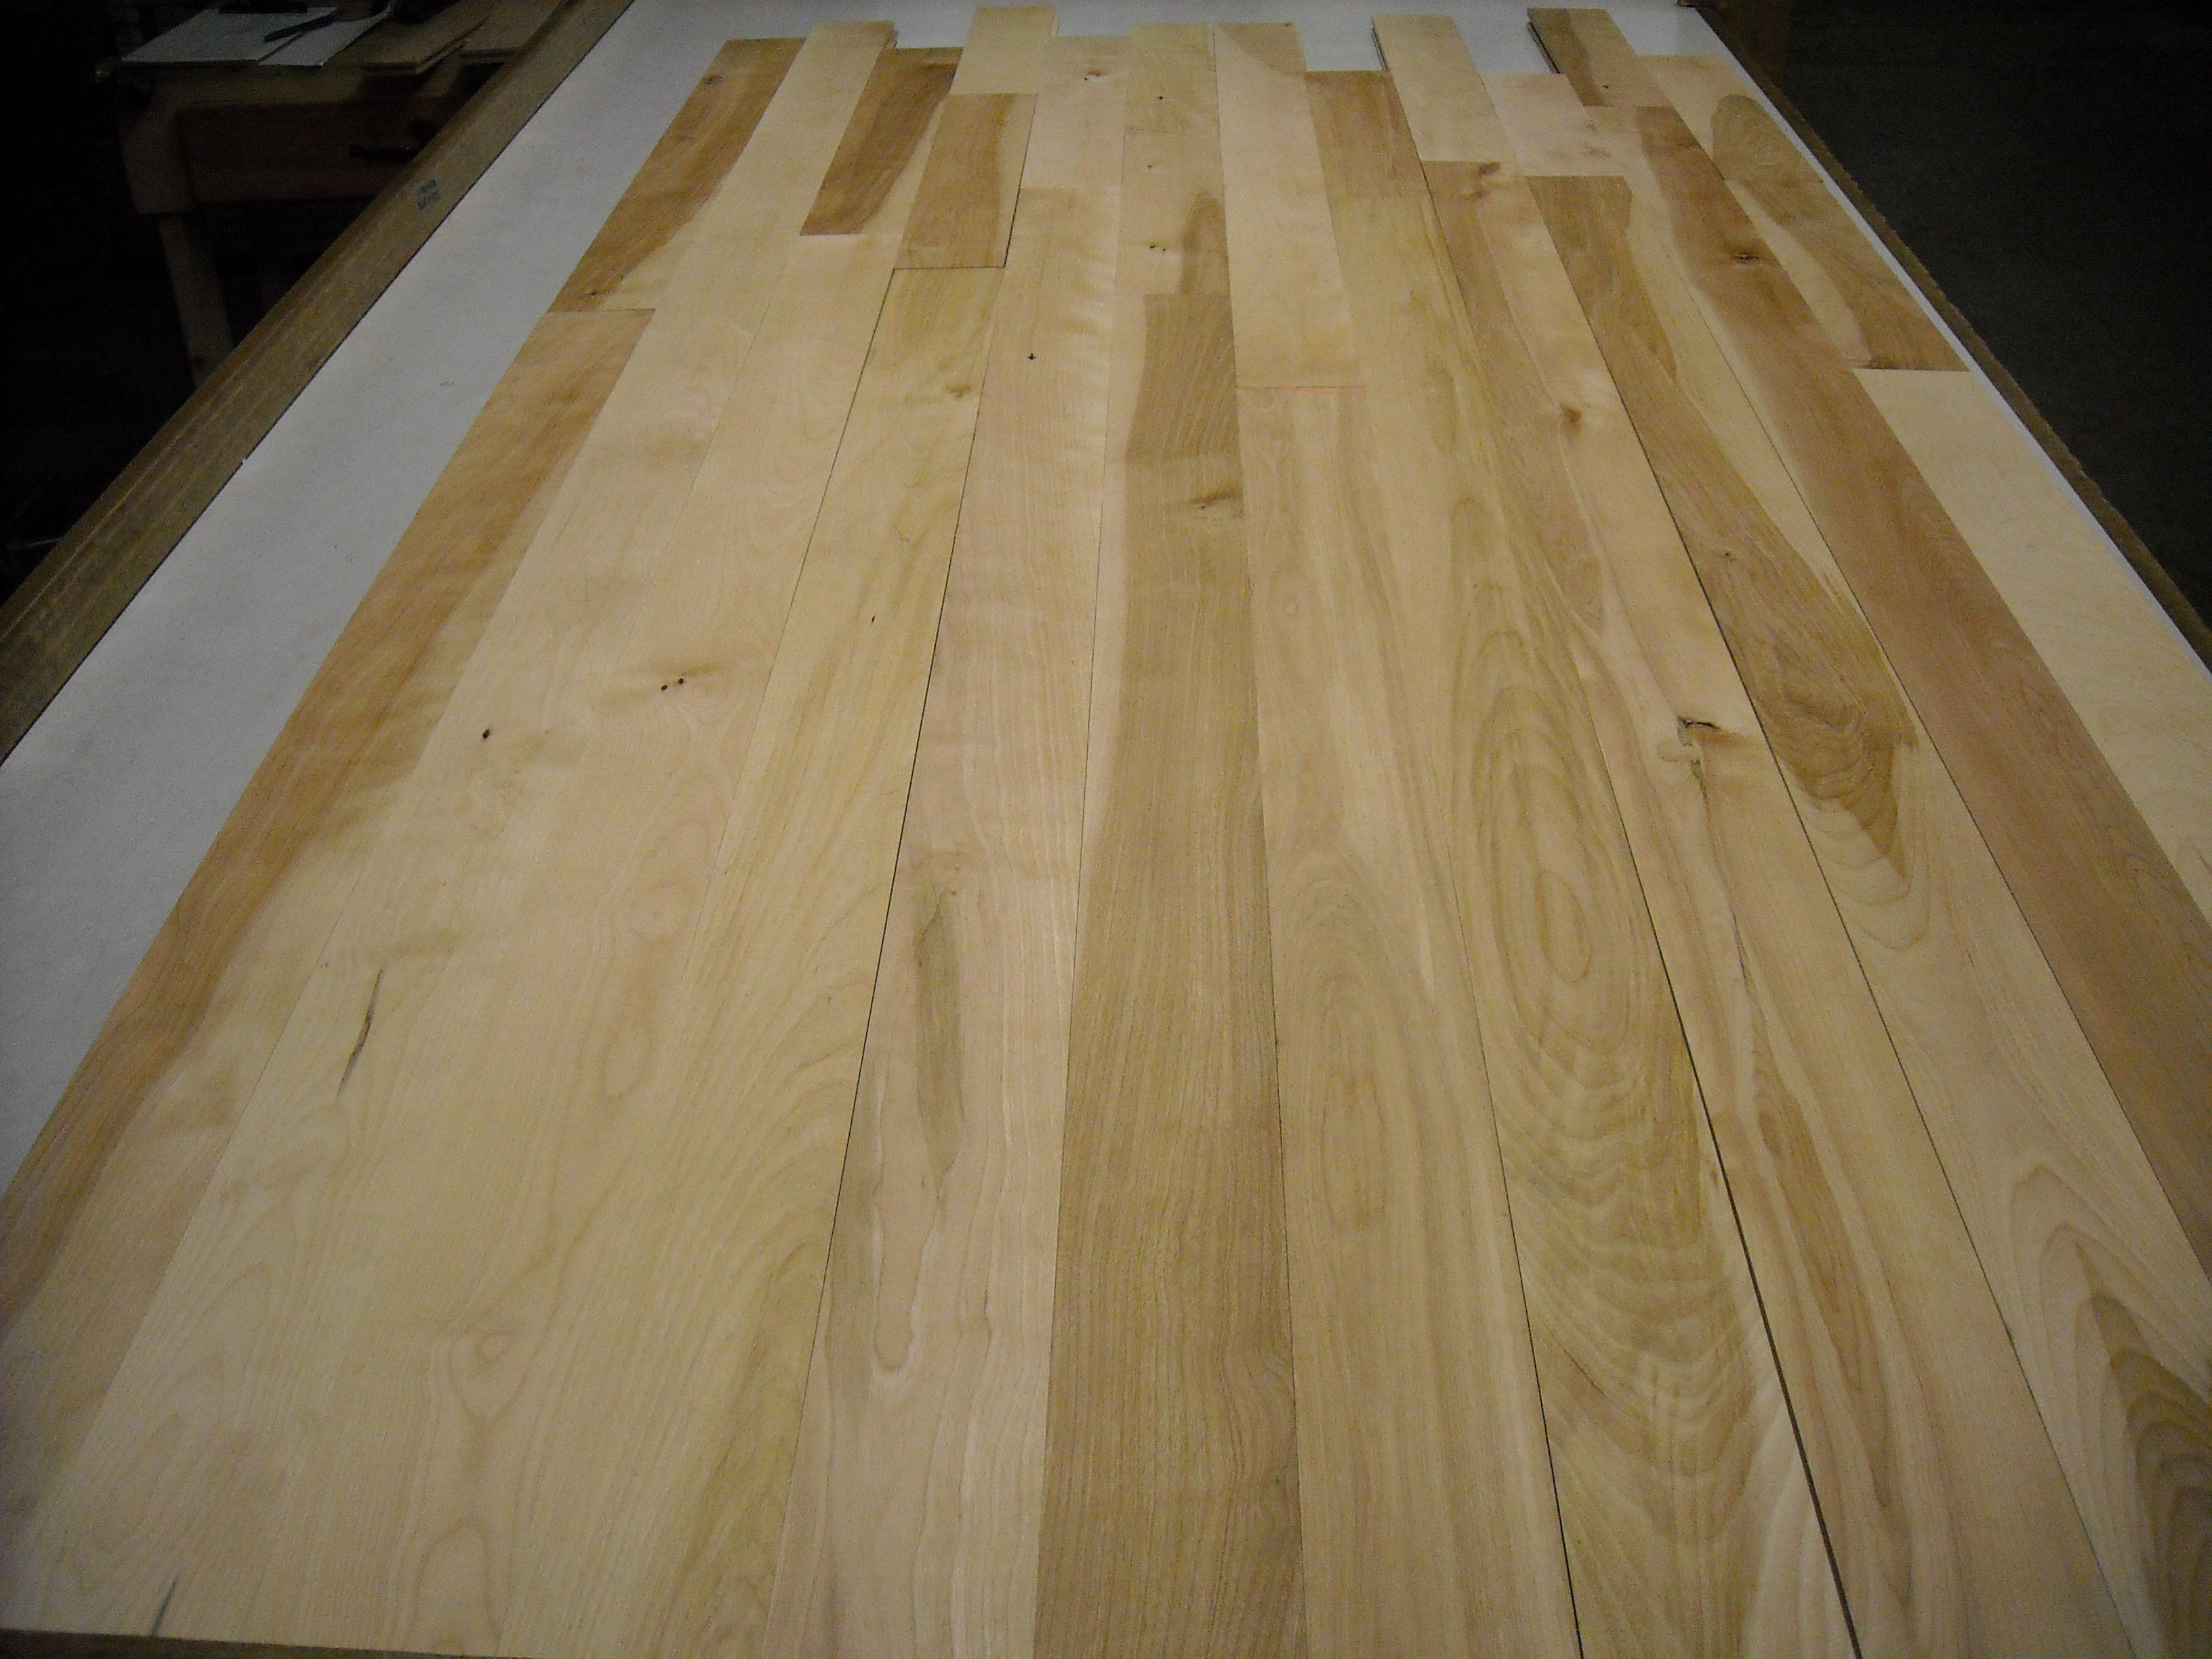 Maine Traditions Hardwood Flooring Unfinished Yellow